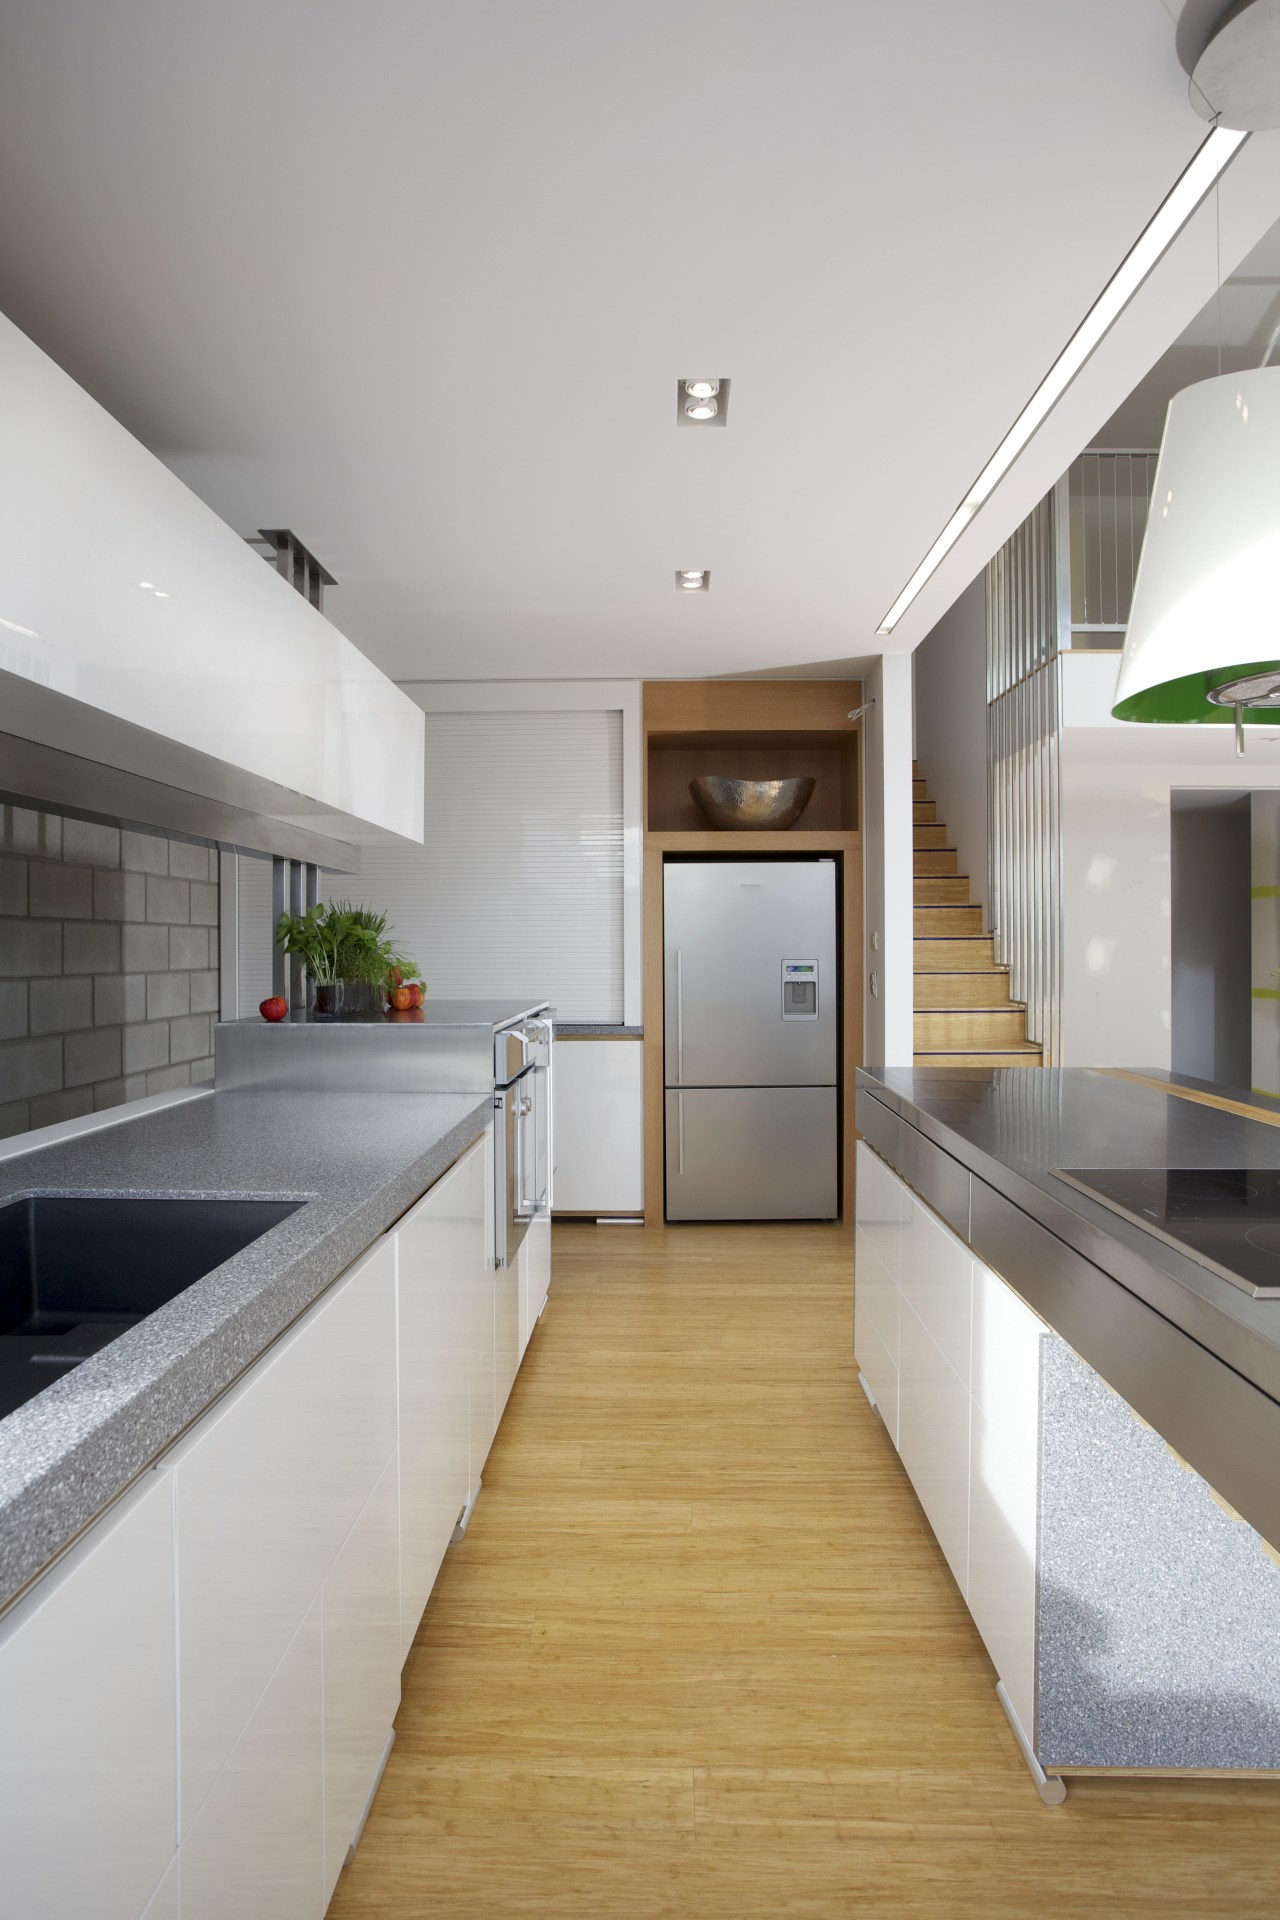 View of kitchen with wooden flooring and stainless architecture, countertop, daylighting, floor, house, interior design, kitchen, real estate, gray